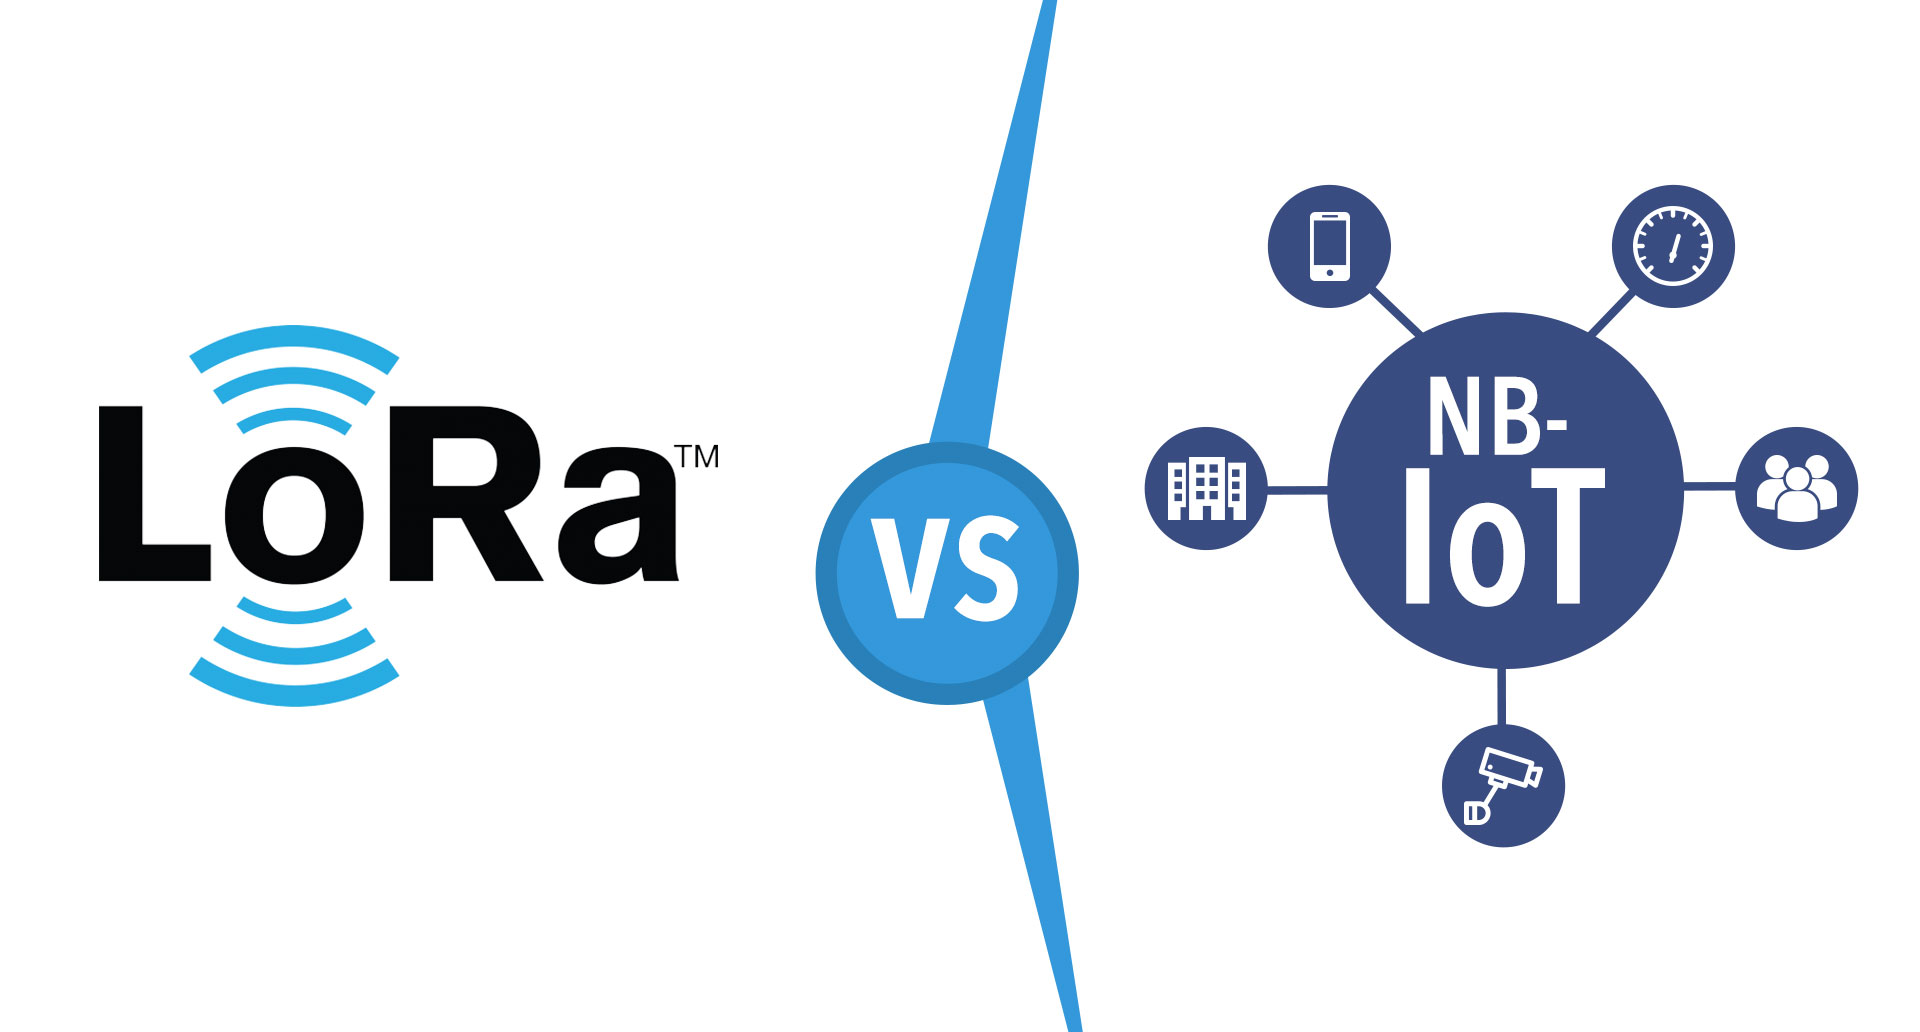 Technical comparison of NB-IOT and LoRa